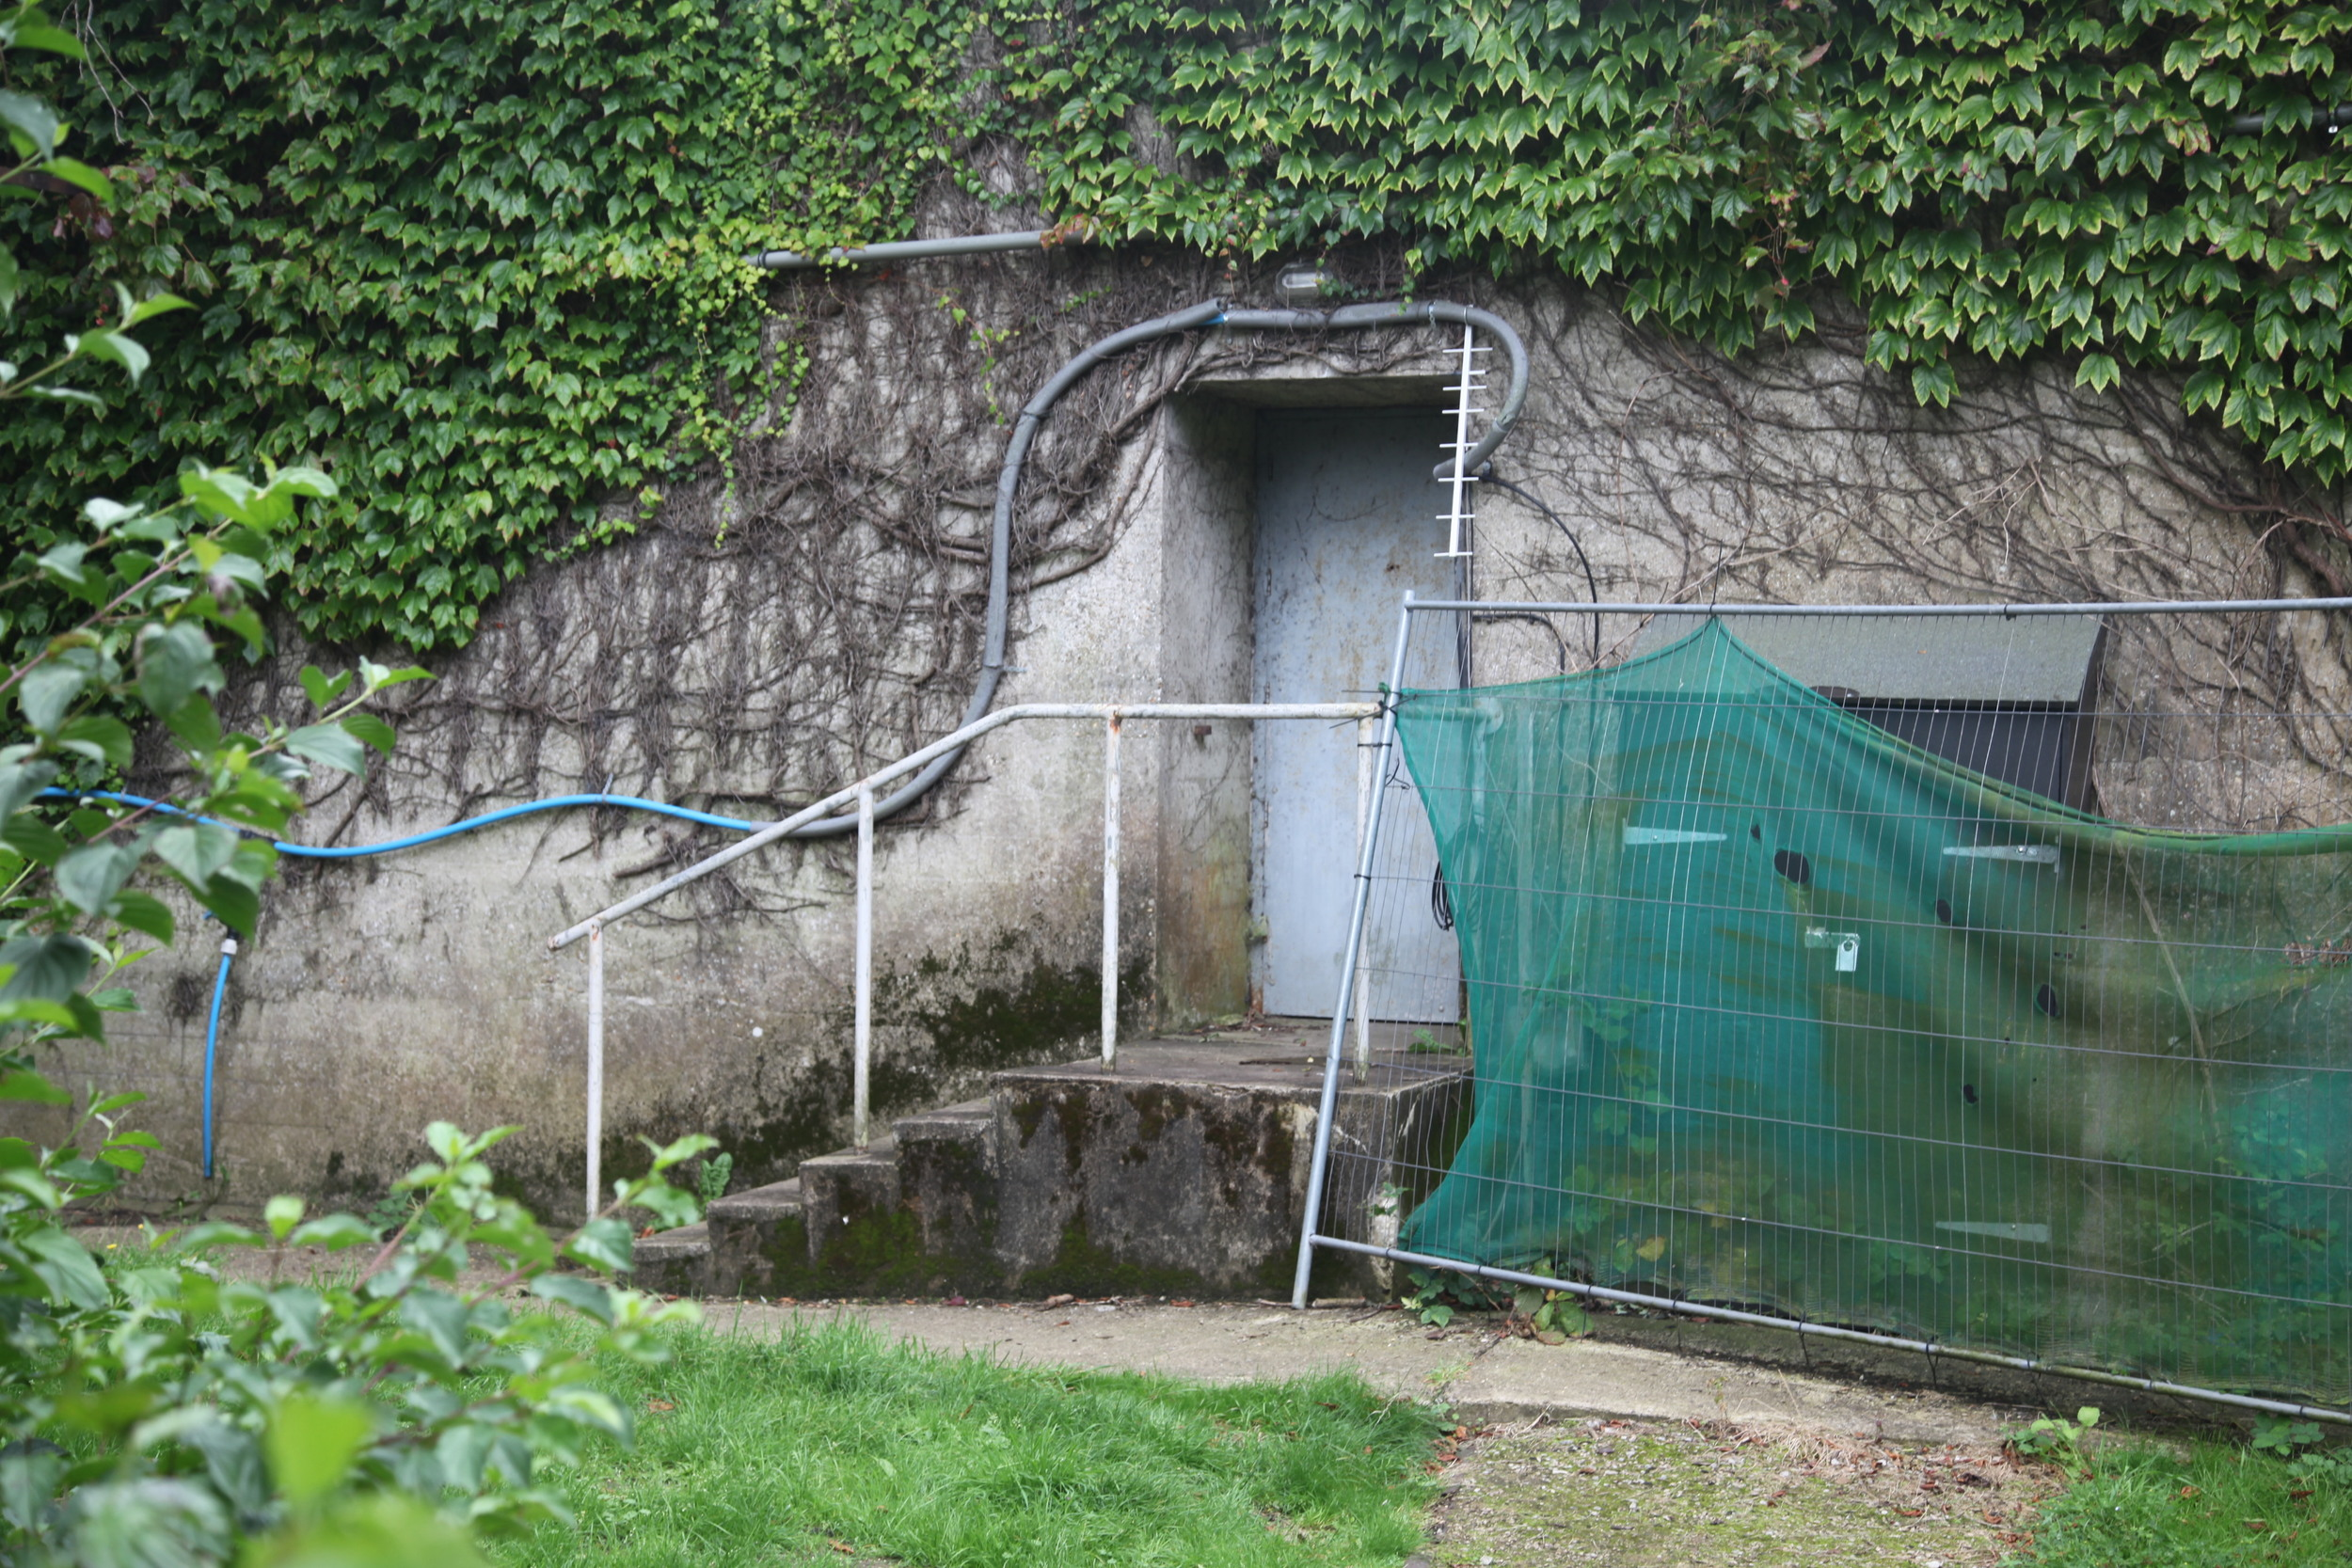 Entrance to the surviving nuclear bunker for key local officials; a reminder of how close we got.